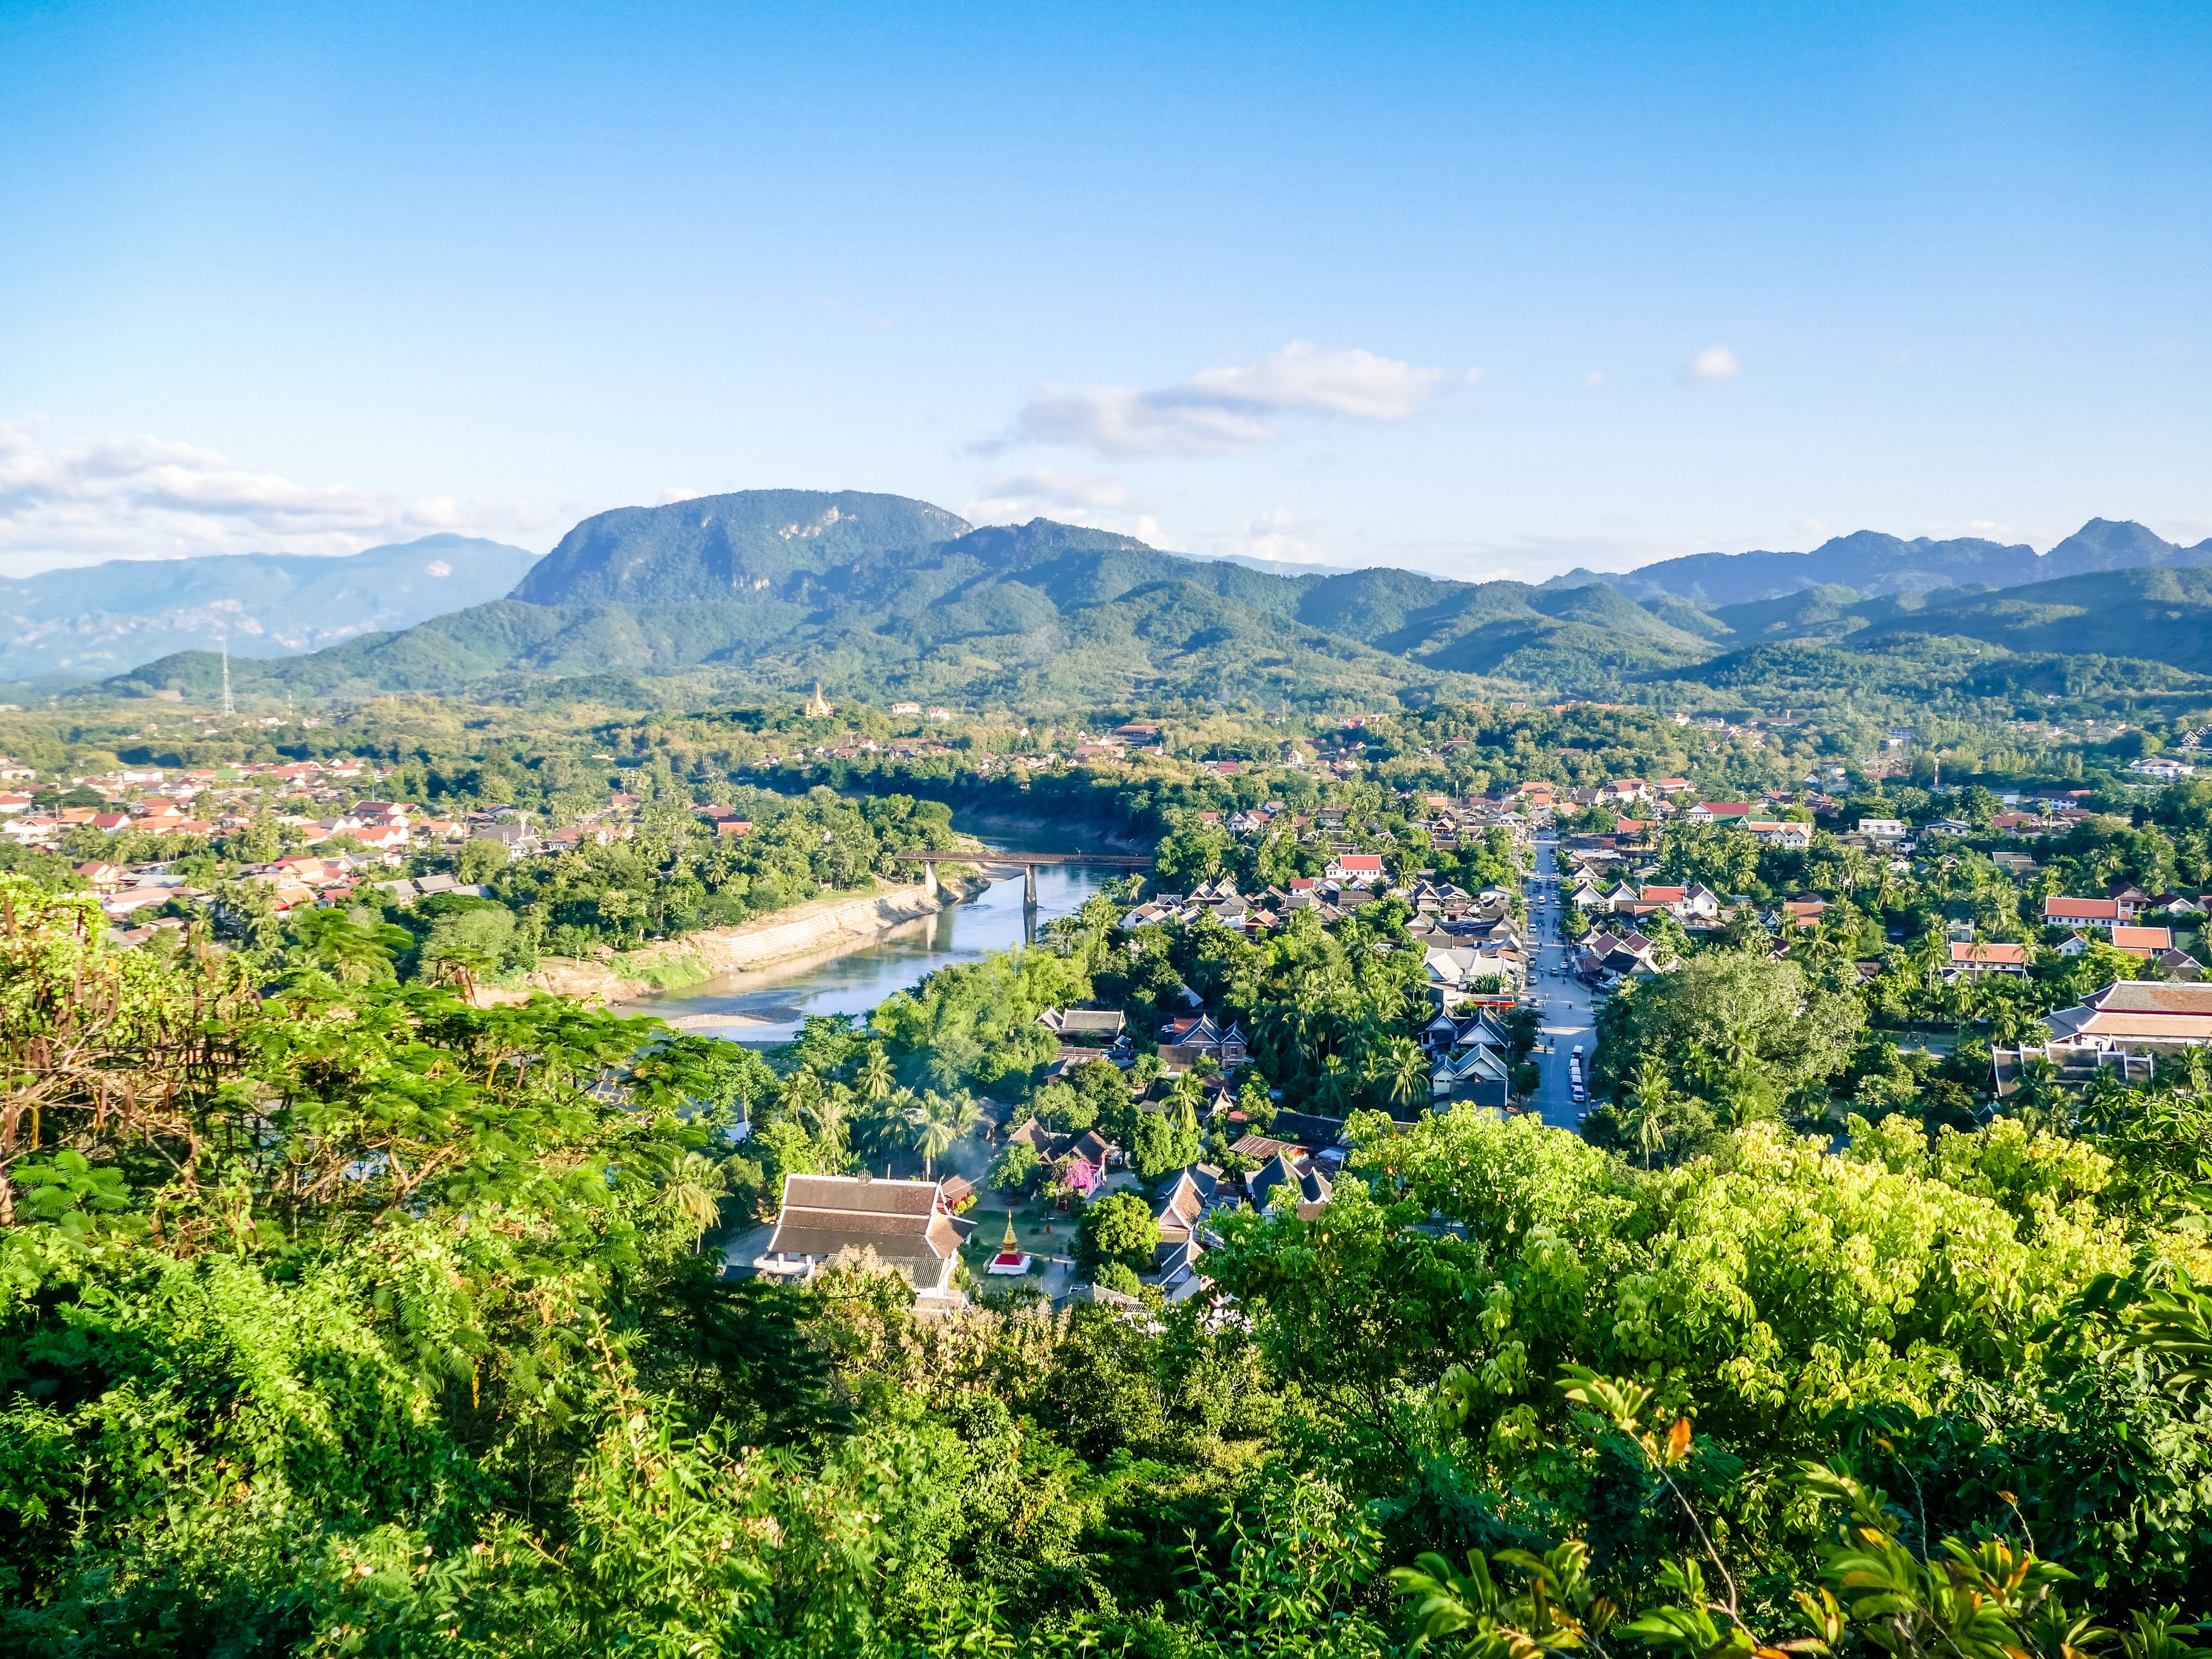 Laos - Travel Information for the First-Time Visitor